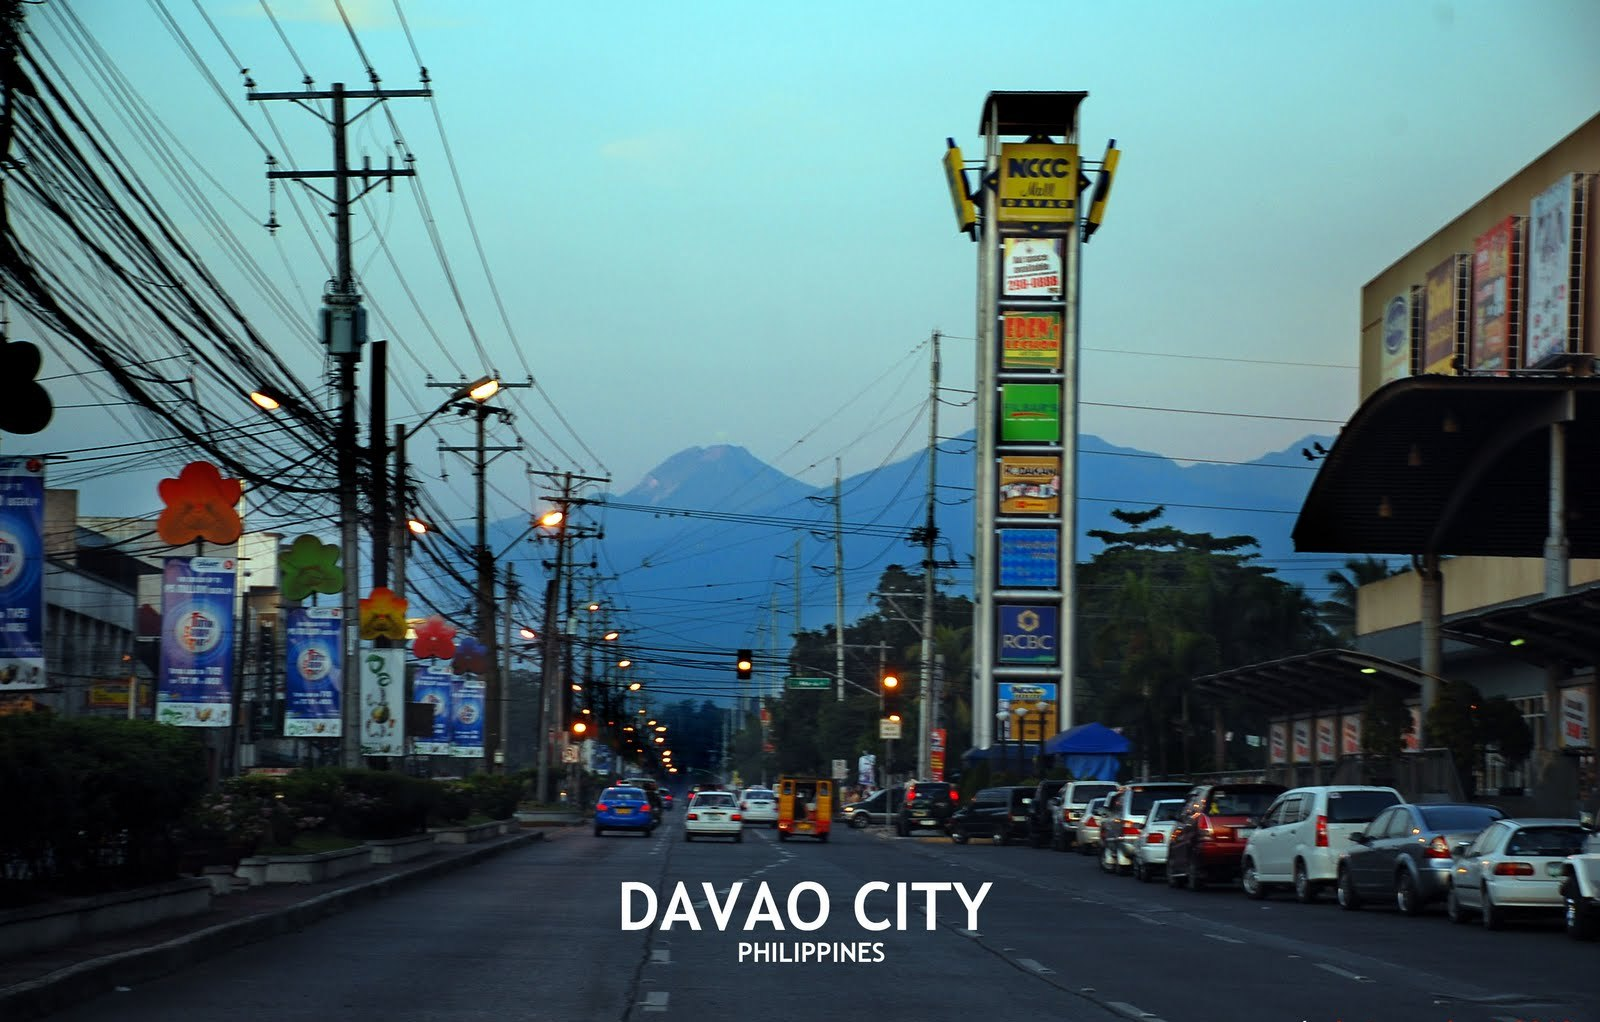 Old davao city photos